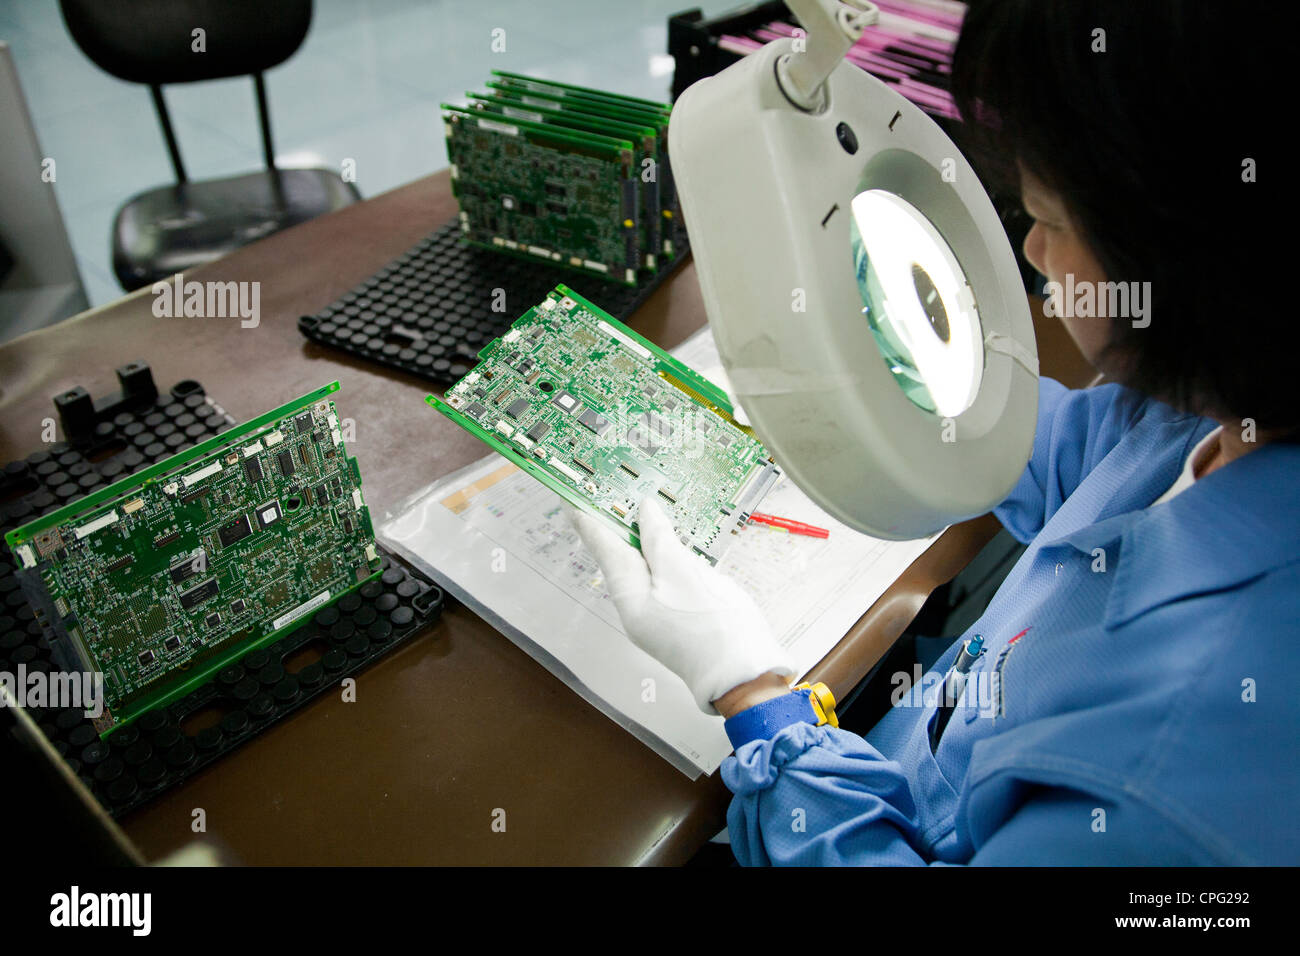 Printed Circuit Board Manufacture Stock Photos Electronic Assembly Jobs A Worker Inspects On The Line At Venture Corp